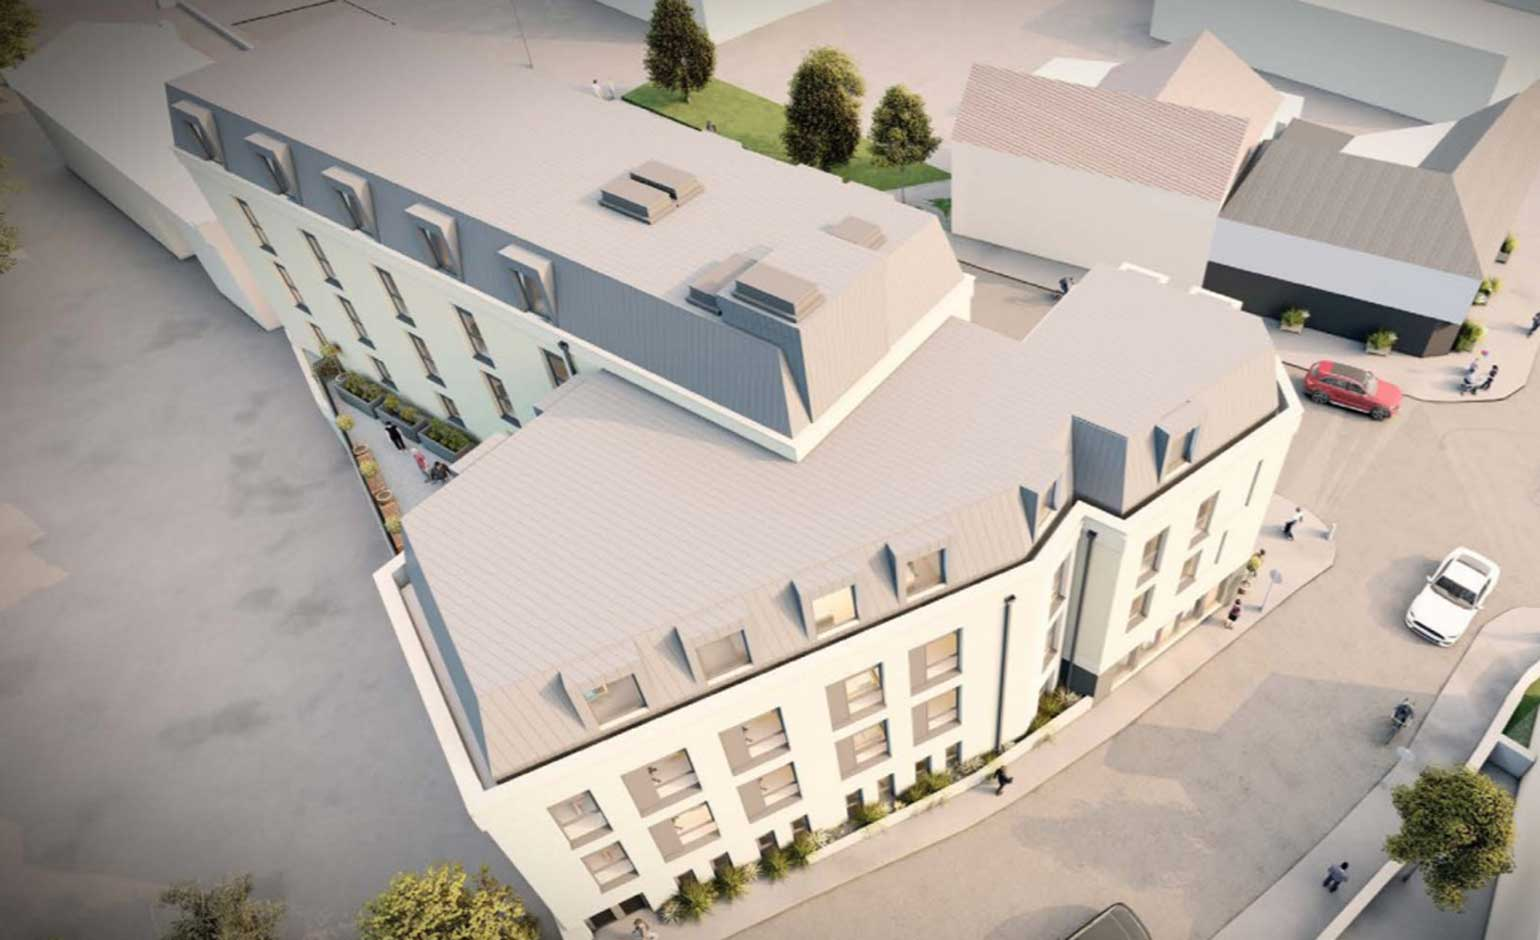 Plans revealed to convert Bath office block into student accommodation